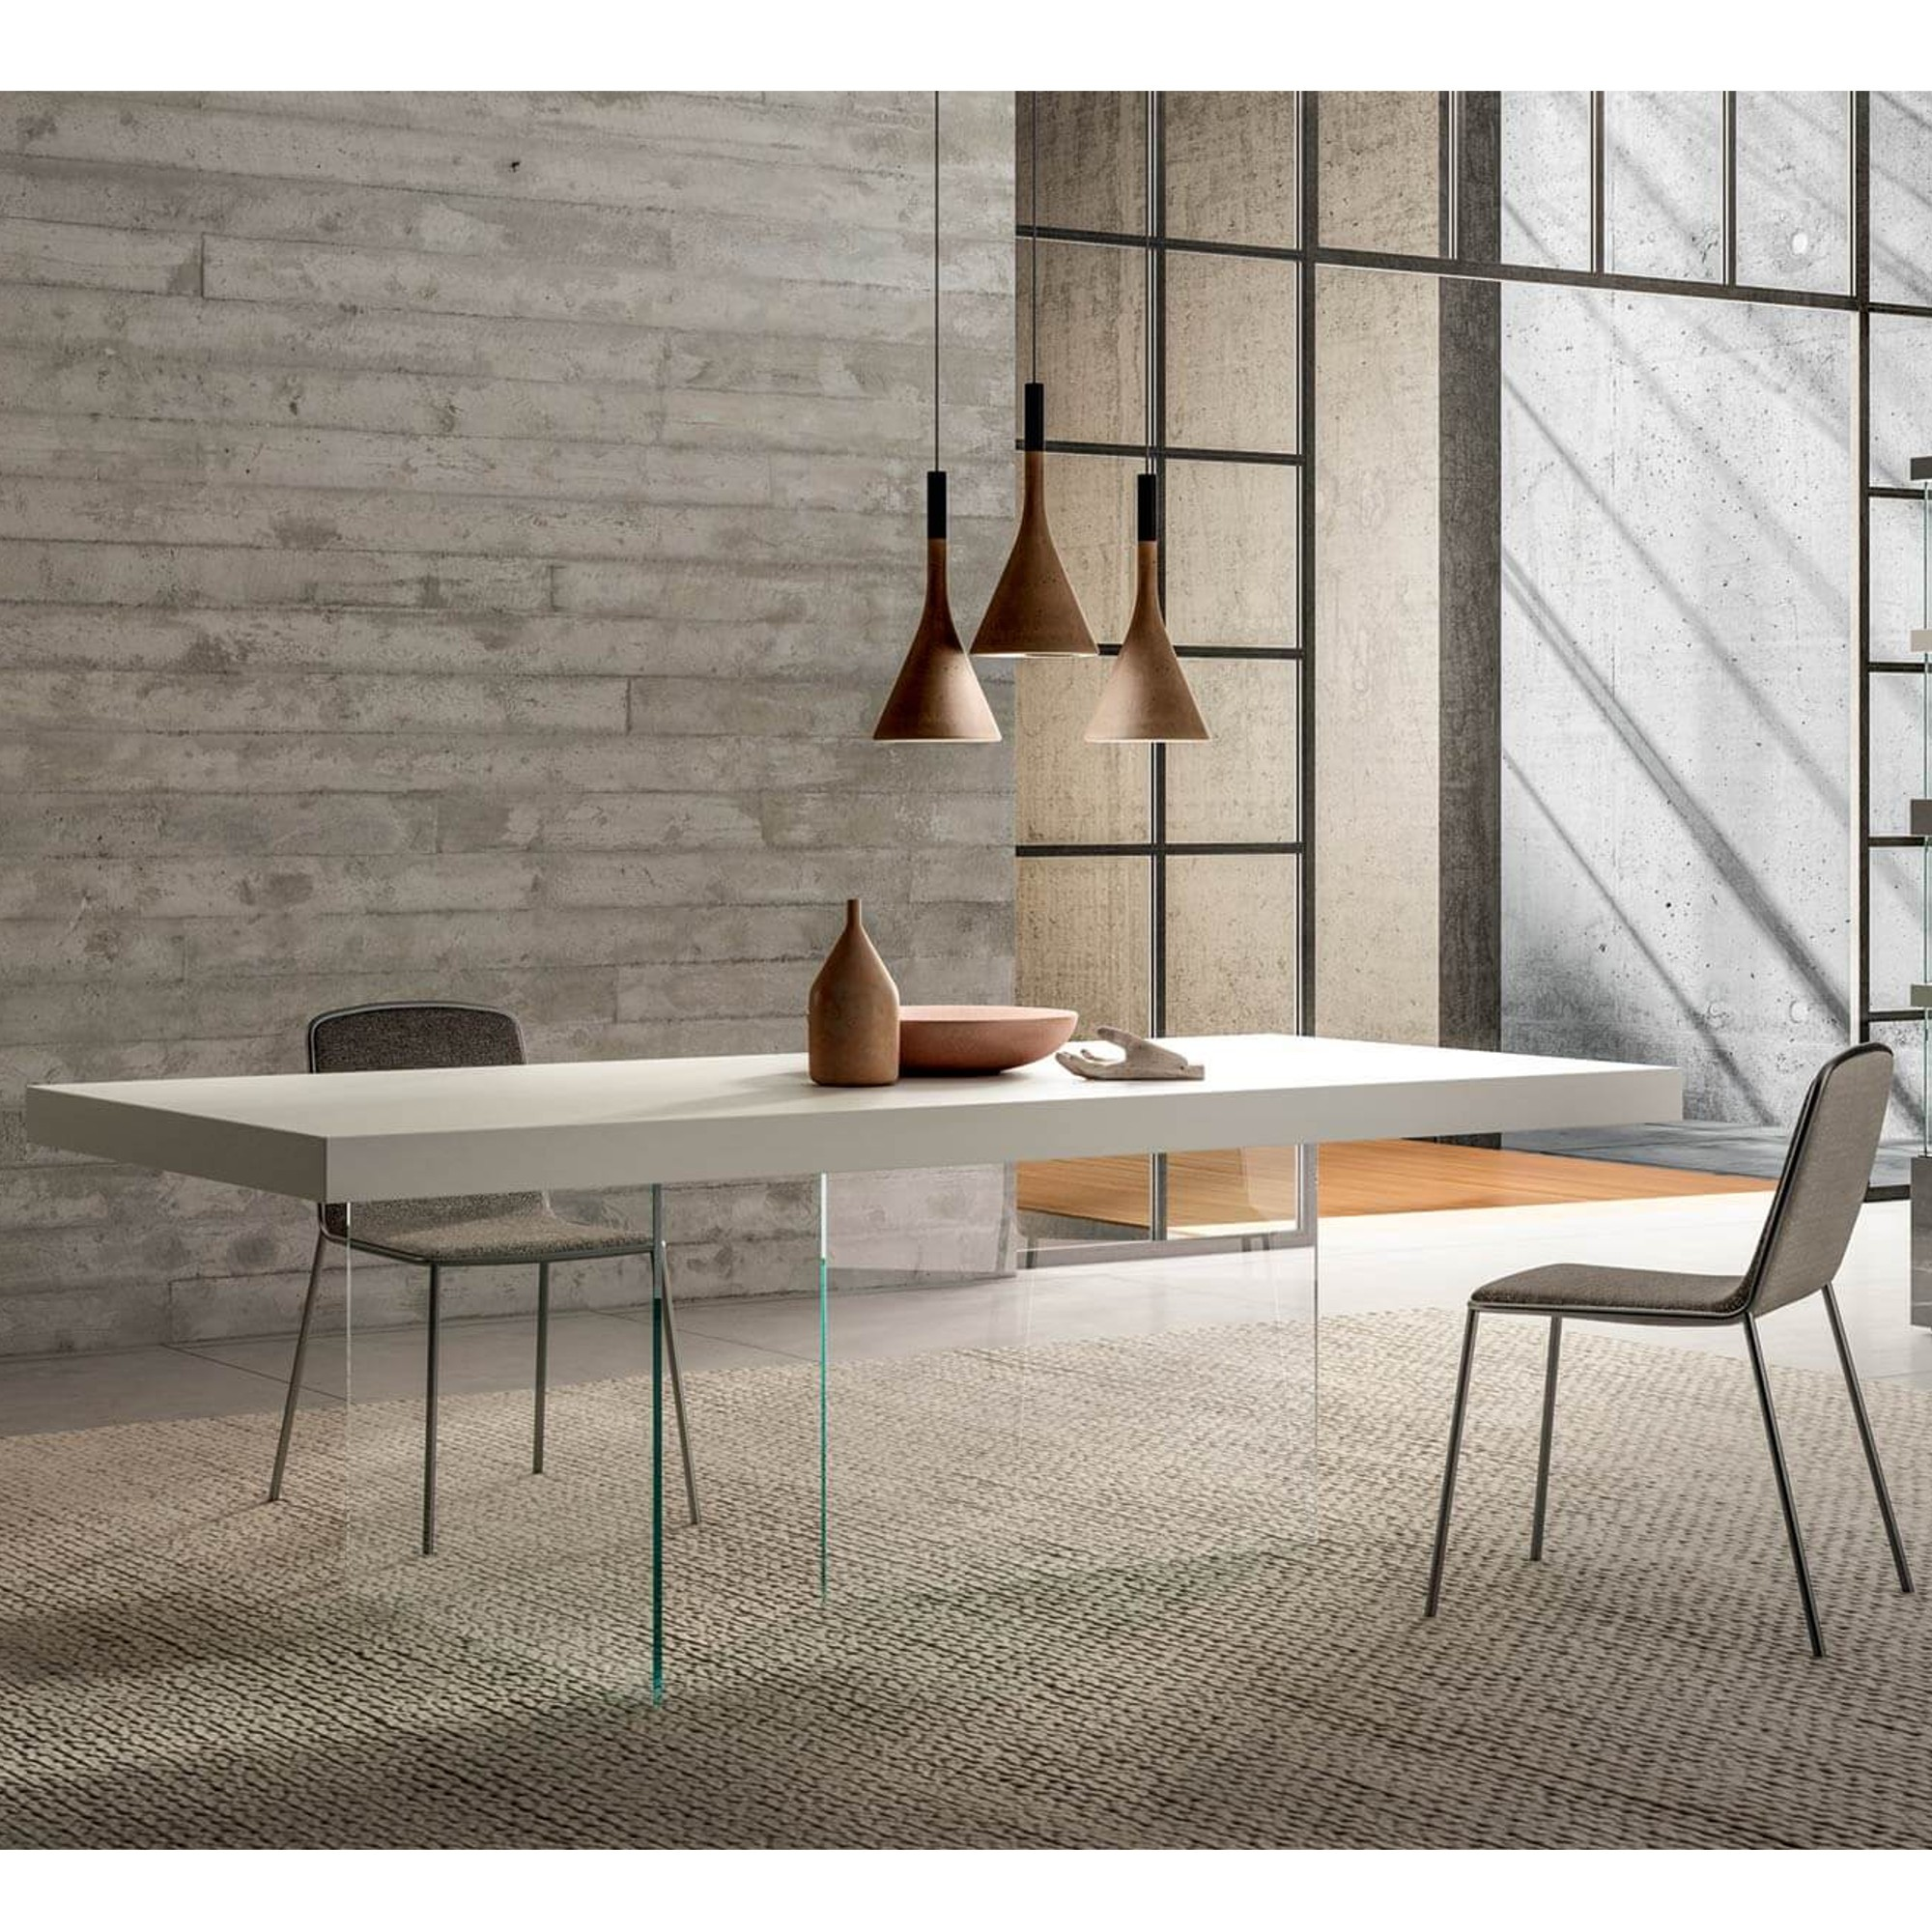 Air Lacquered Fixed Tables Tables Lago Masonionline